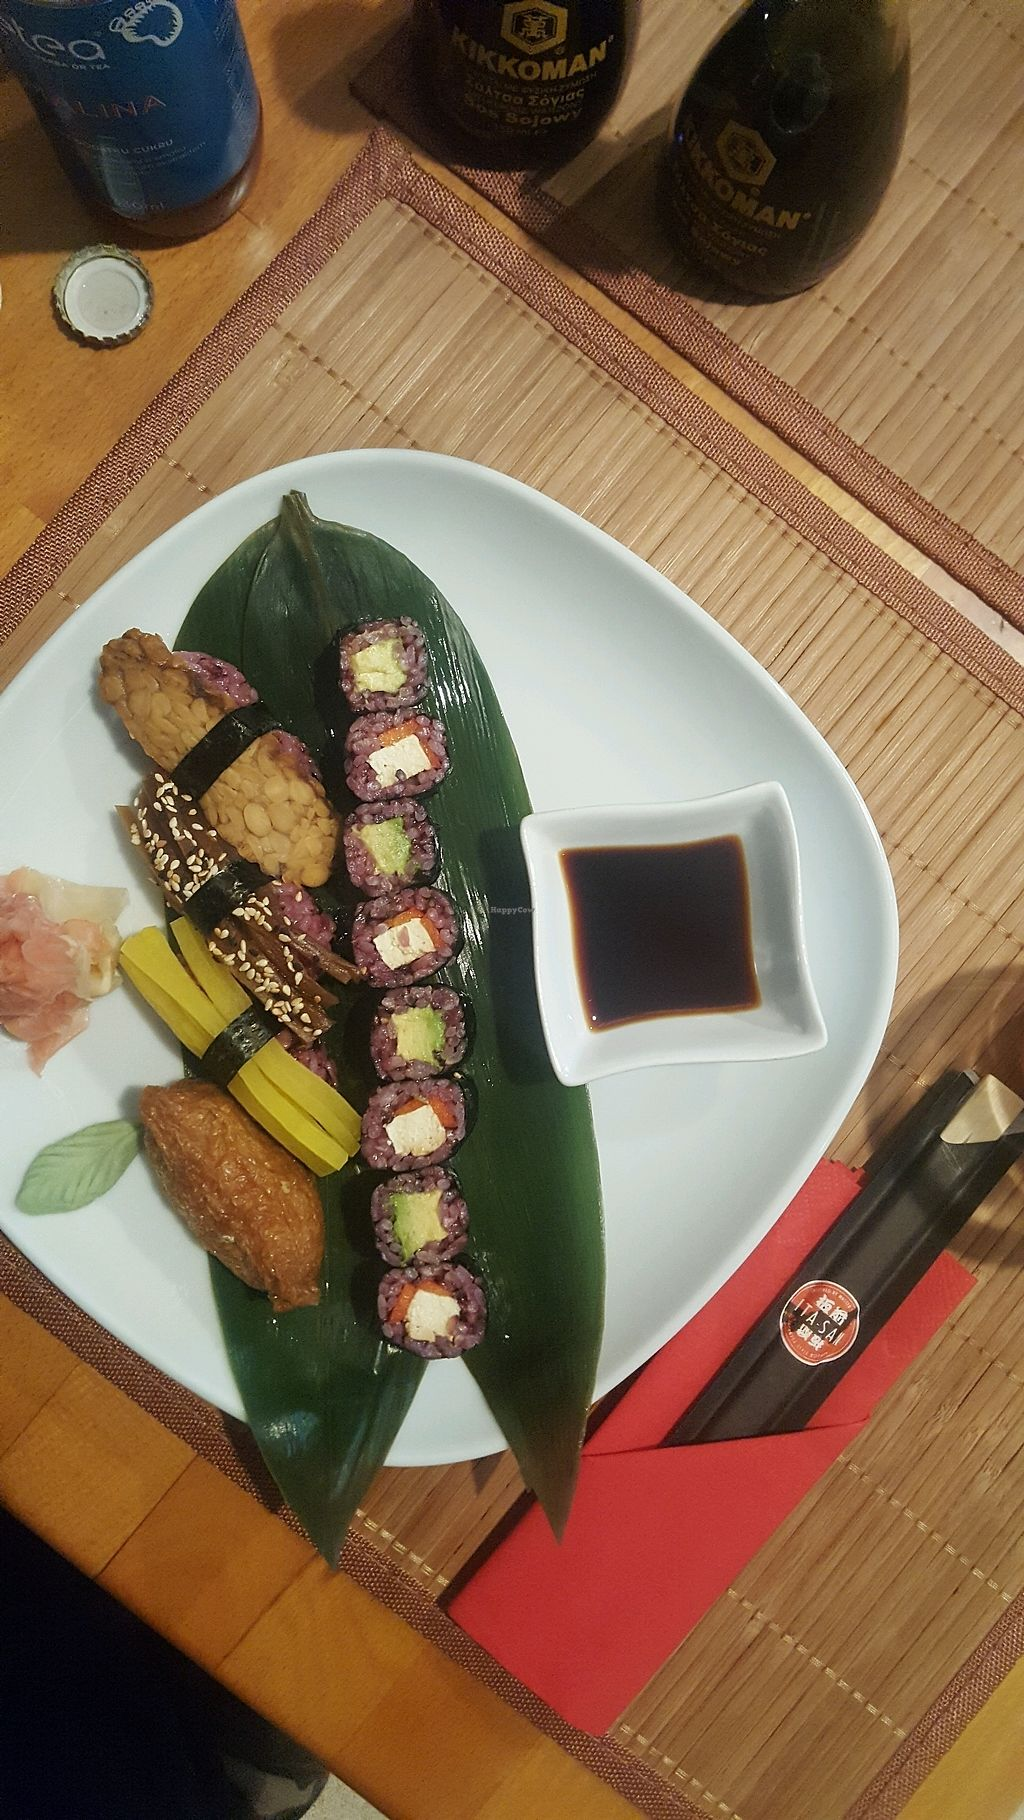 """Photo of Edamame Vegan Sushi  by <a href=""""/members/profile/LeaV.Contreras"""">LeaV.Contreras</a> <br/>Mix set <br/> January 31, 2018  - <a href='/contact/abuse/image/65741/353077'>Report</a>"""